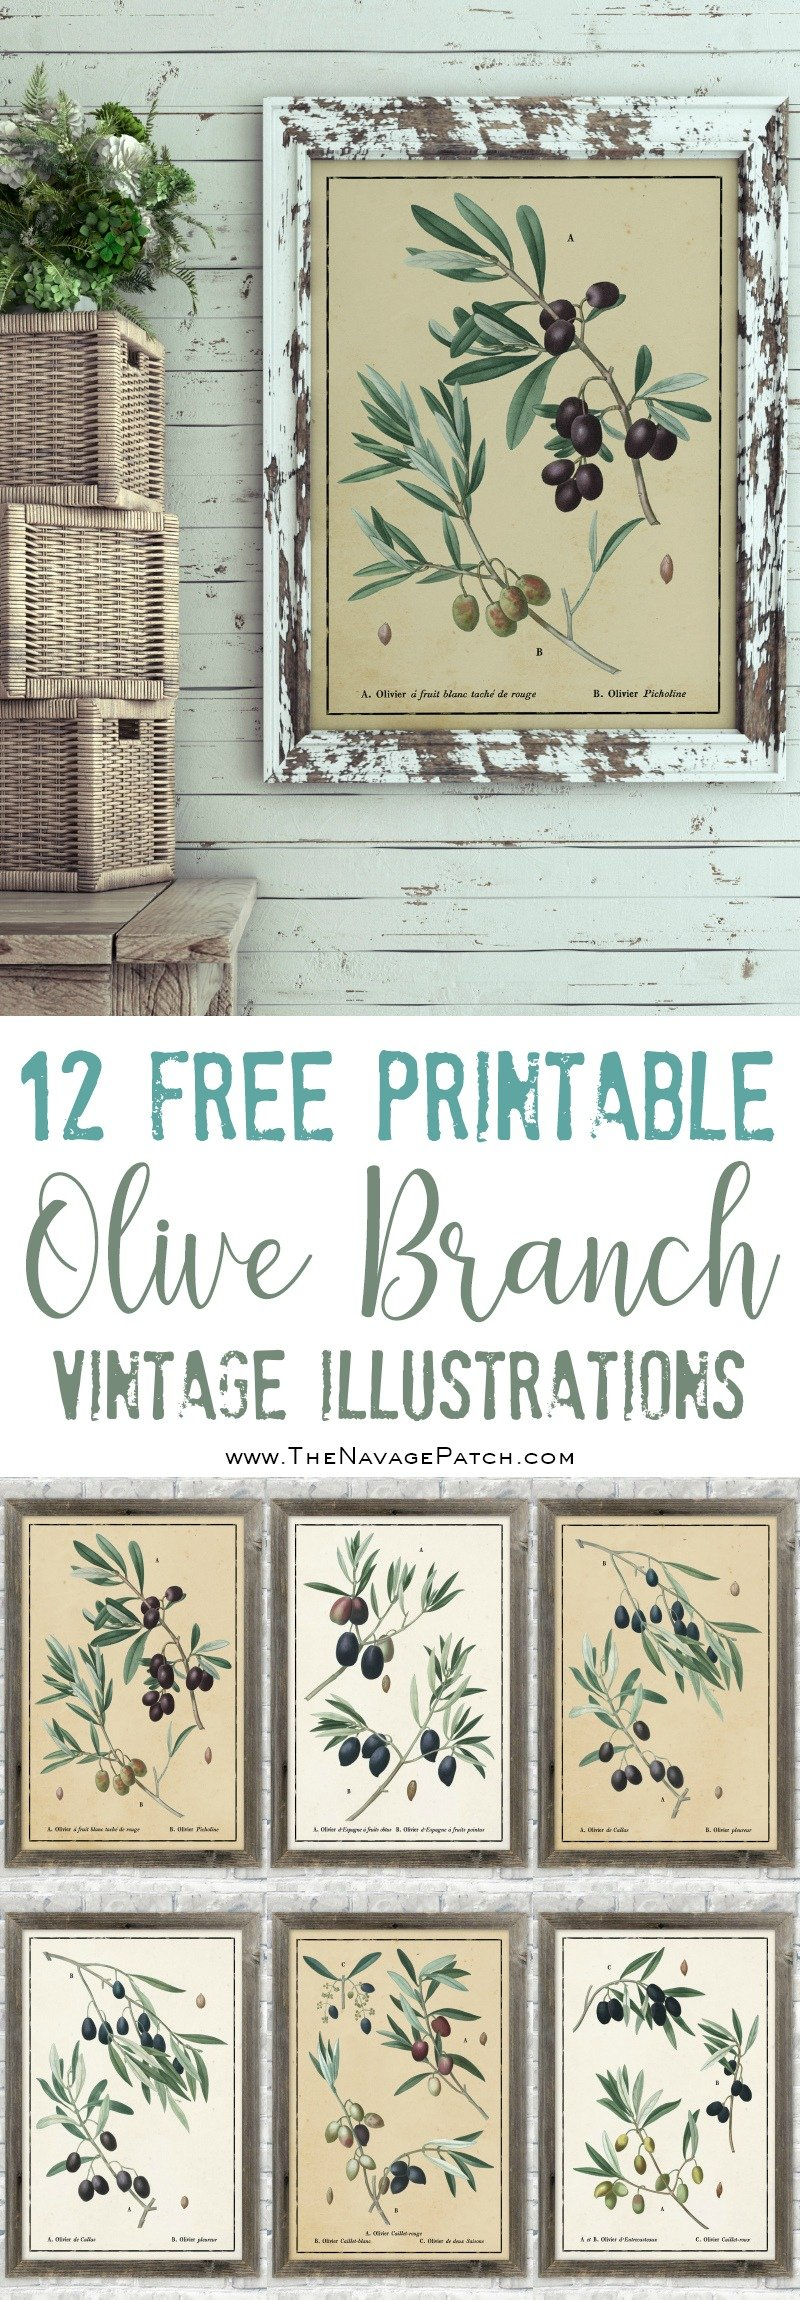 Vintage botanical olive branch illustrations pinterest image